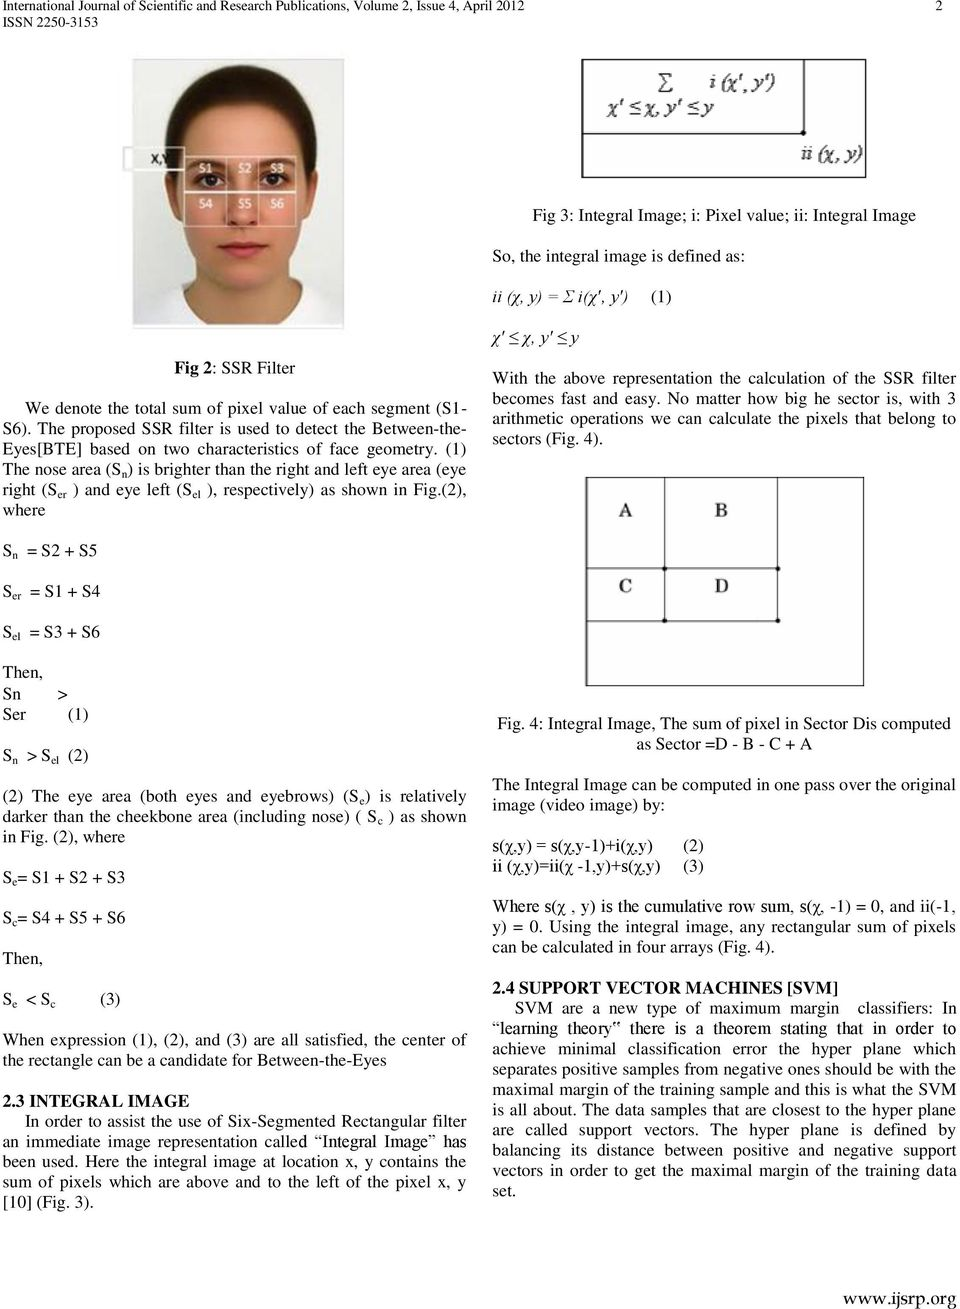 The proposed SSR filter is used to detect the Between-the- Eyes[BTE] based on two characteristics of face geometry.